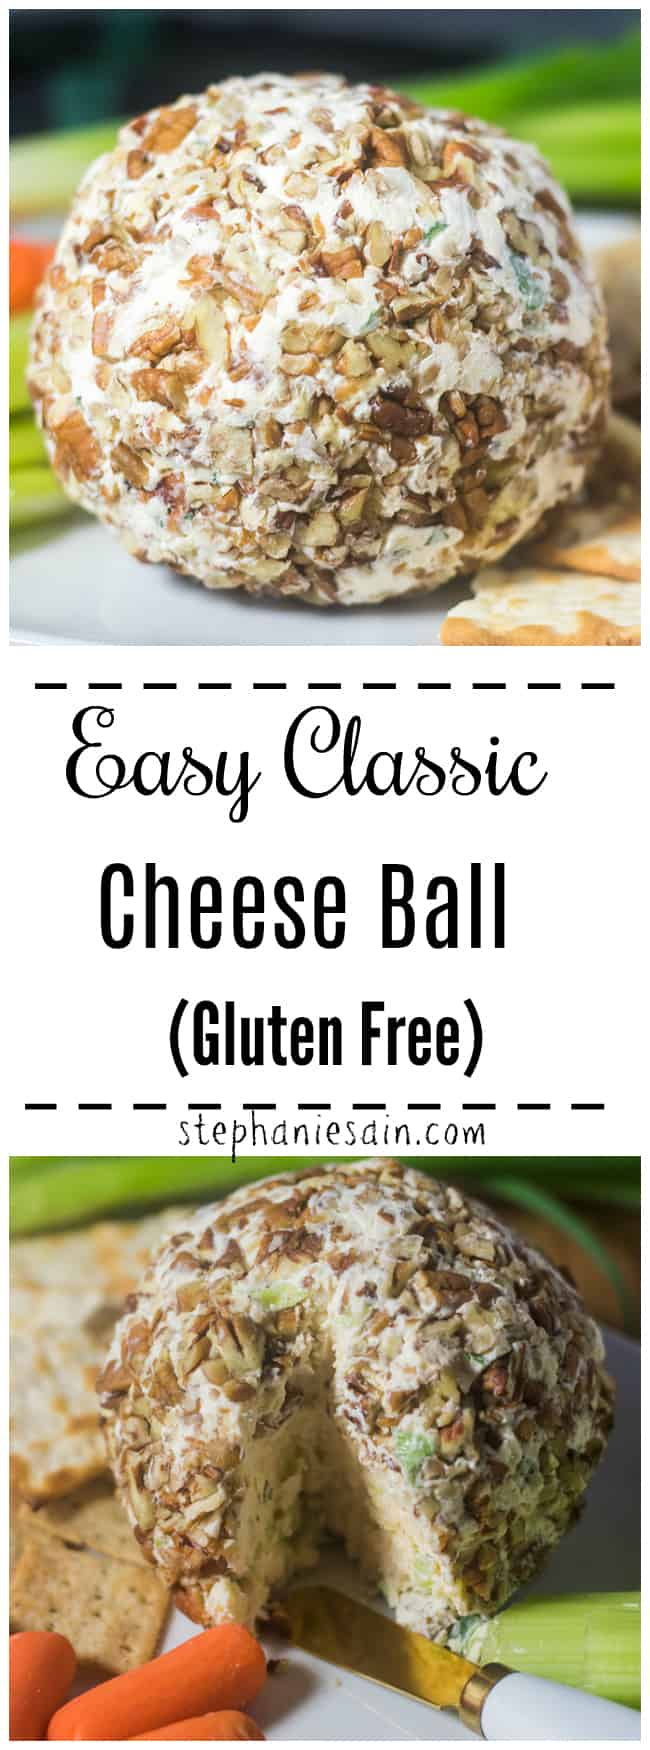 This Cheese Ball is a classic easy recipe that only requires a few ingredients and about 10 minutes prep. An easy elegant appetizer perfect for the holidays, parties, and entertaining. Gluten Free.